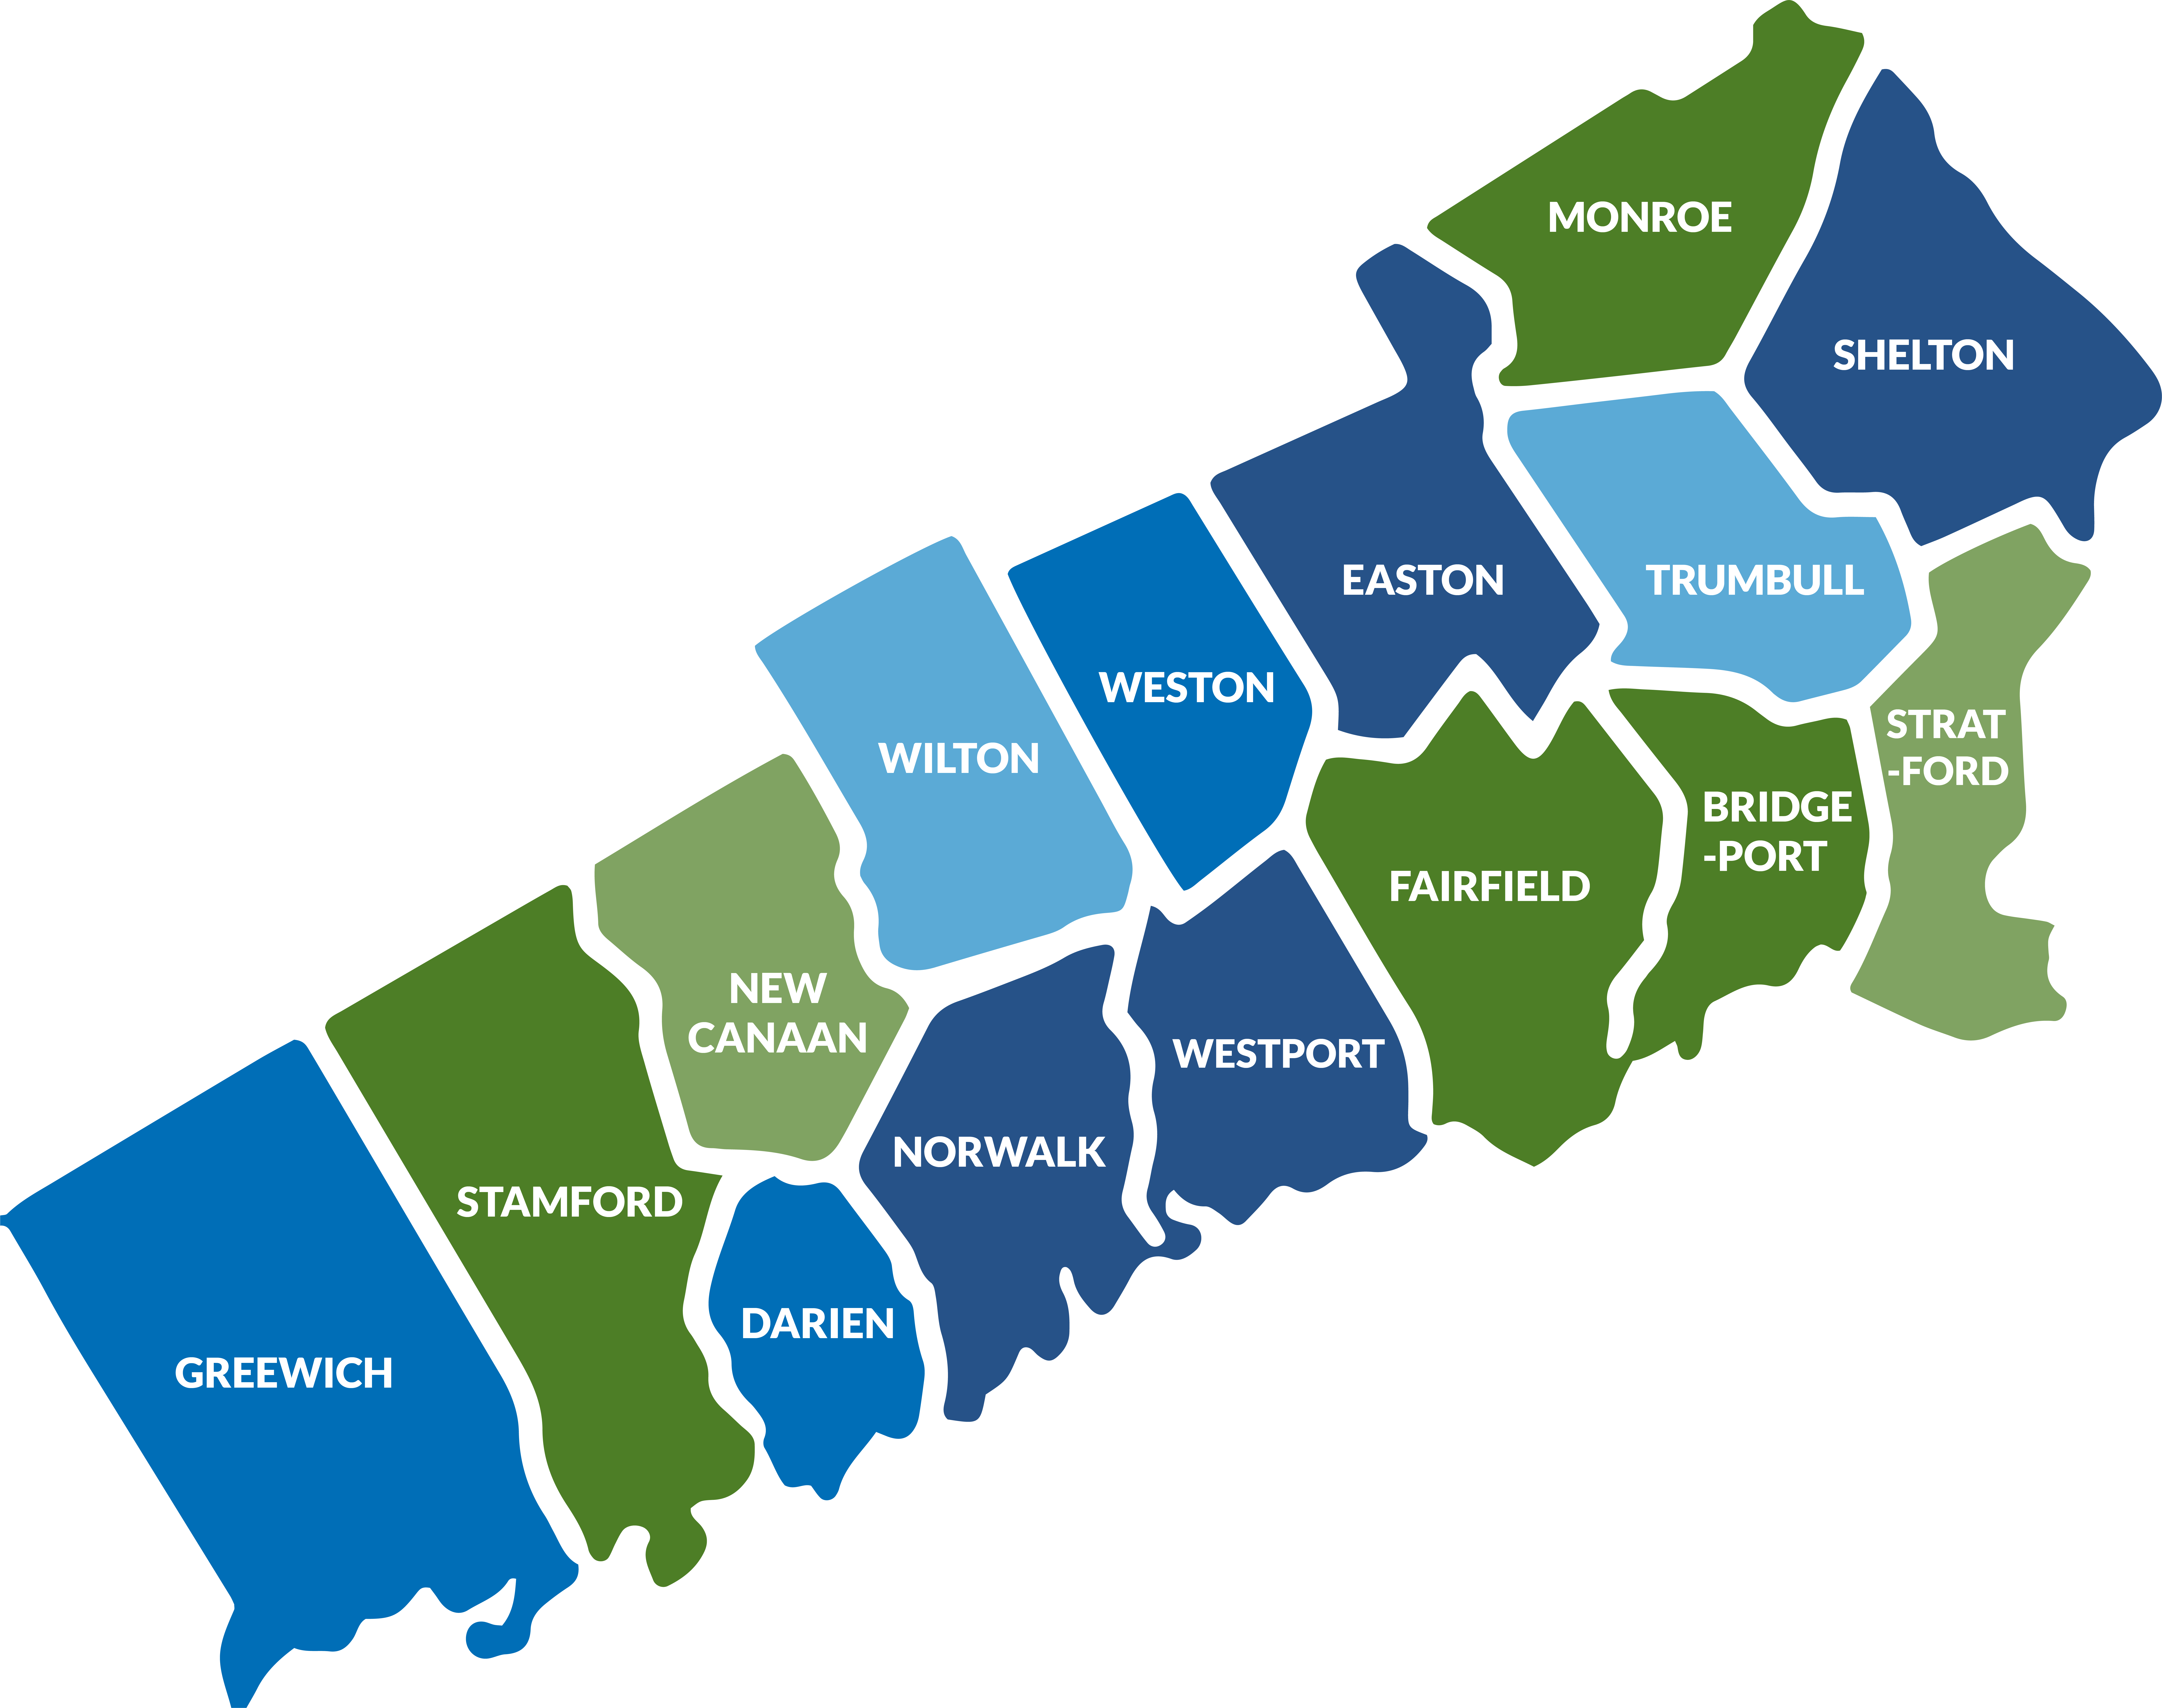 Map of areas served for SCORE Fairfield County